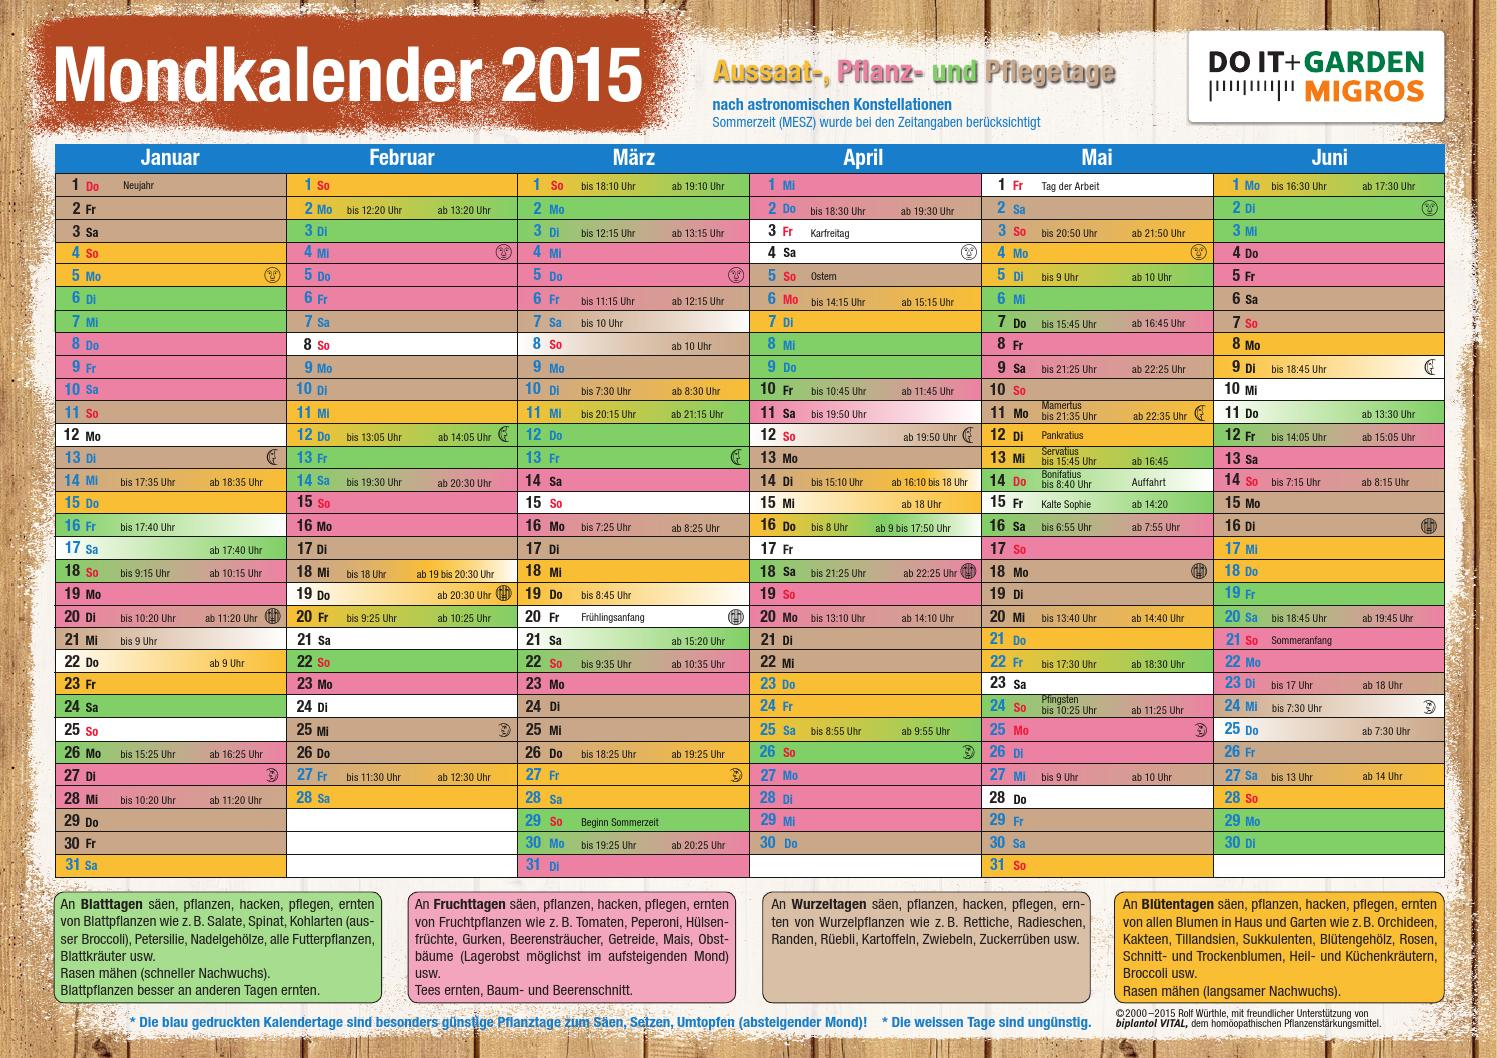 mondkalender 2015 garten mondkalender 2015 garten april garten house und dekor mondkalender. Black Bedroom Furniture Sets. Home Design Ideas